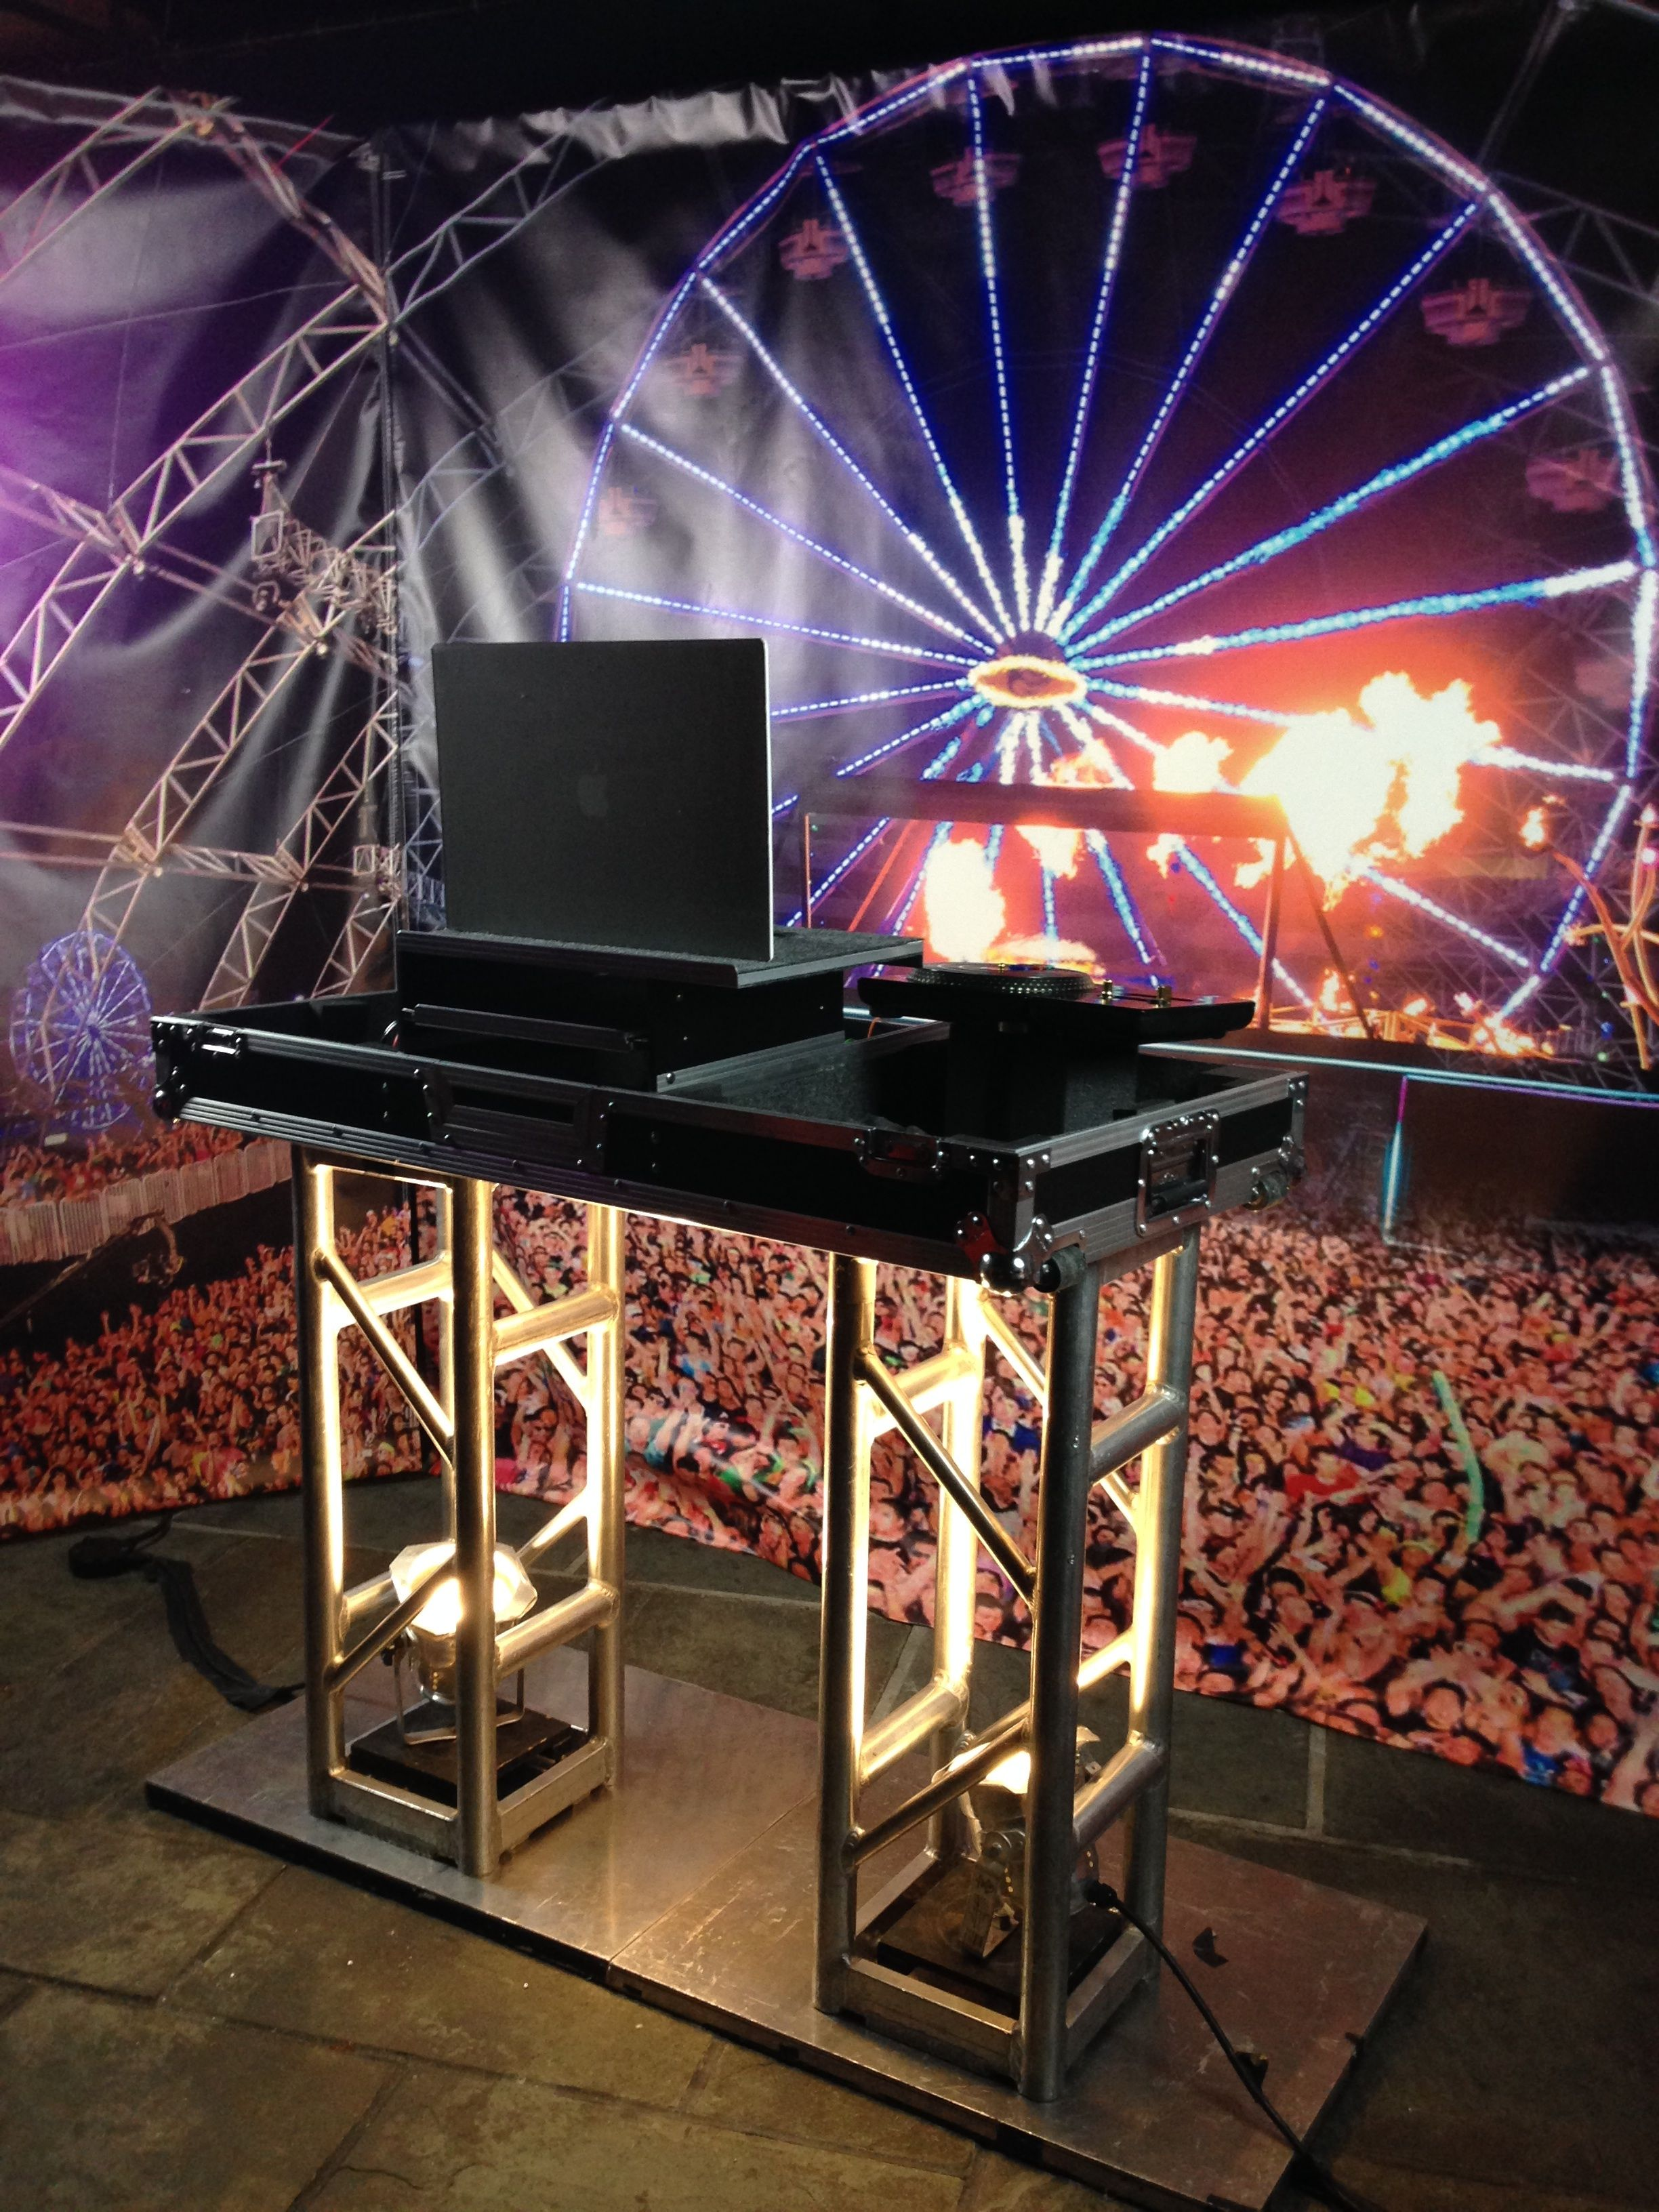 Dj Booth For Sale >> DJ Booth Backdrop | Photo Backdrops in 2019 | Dj booth, Dj equipment for sale, Dj equipment